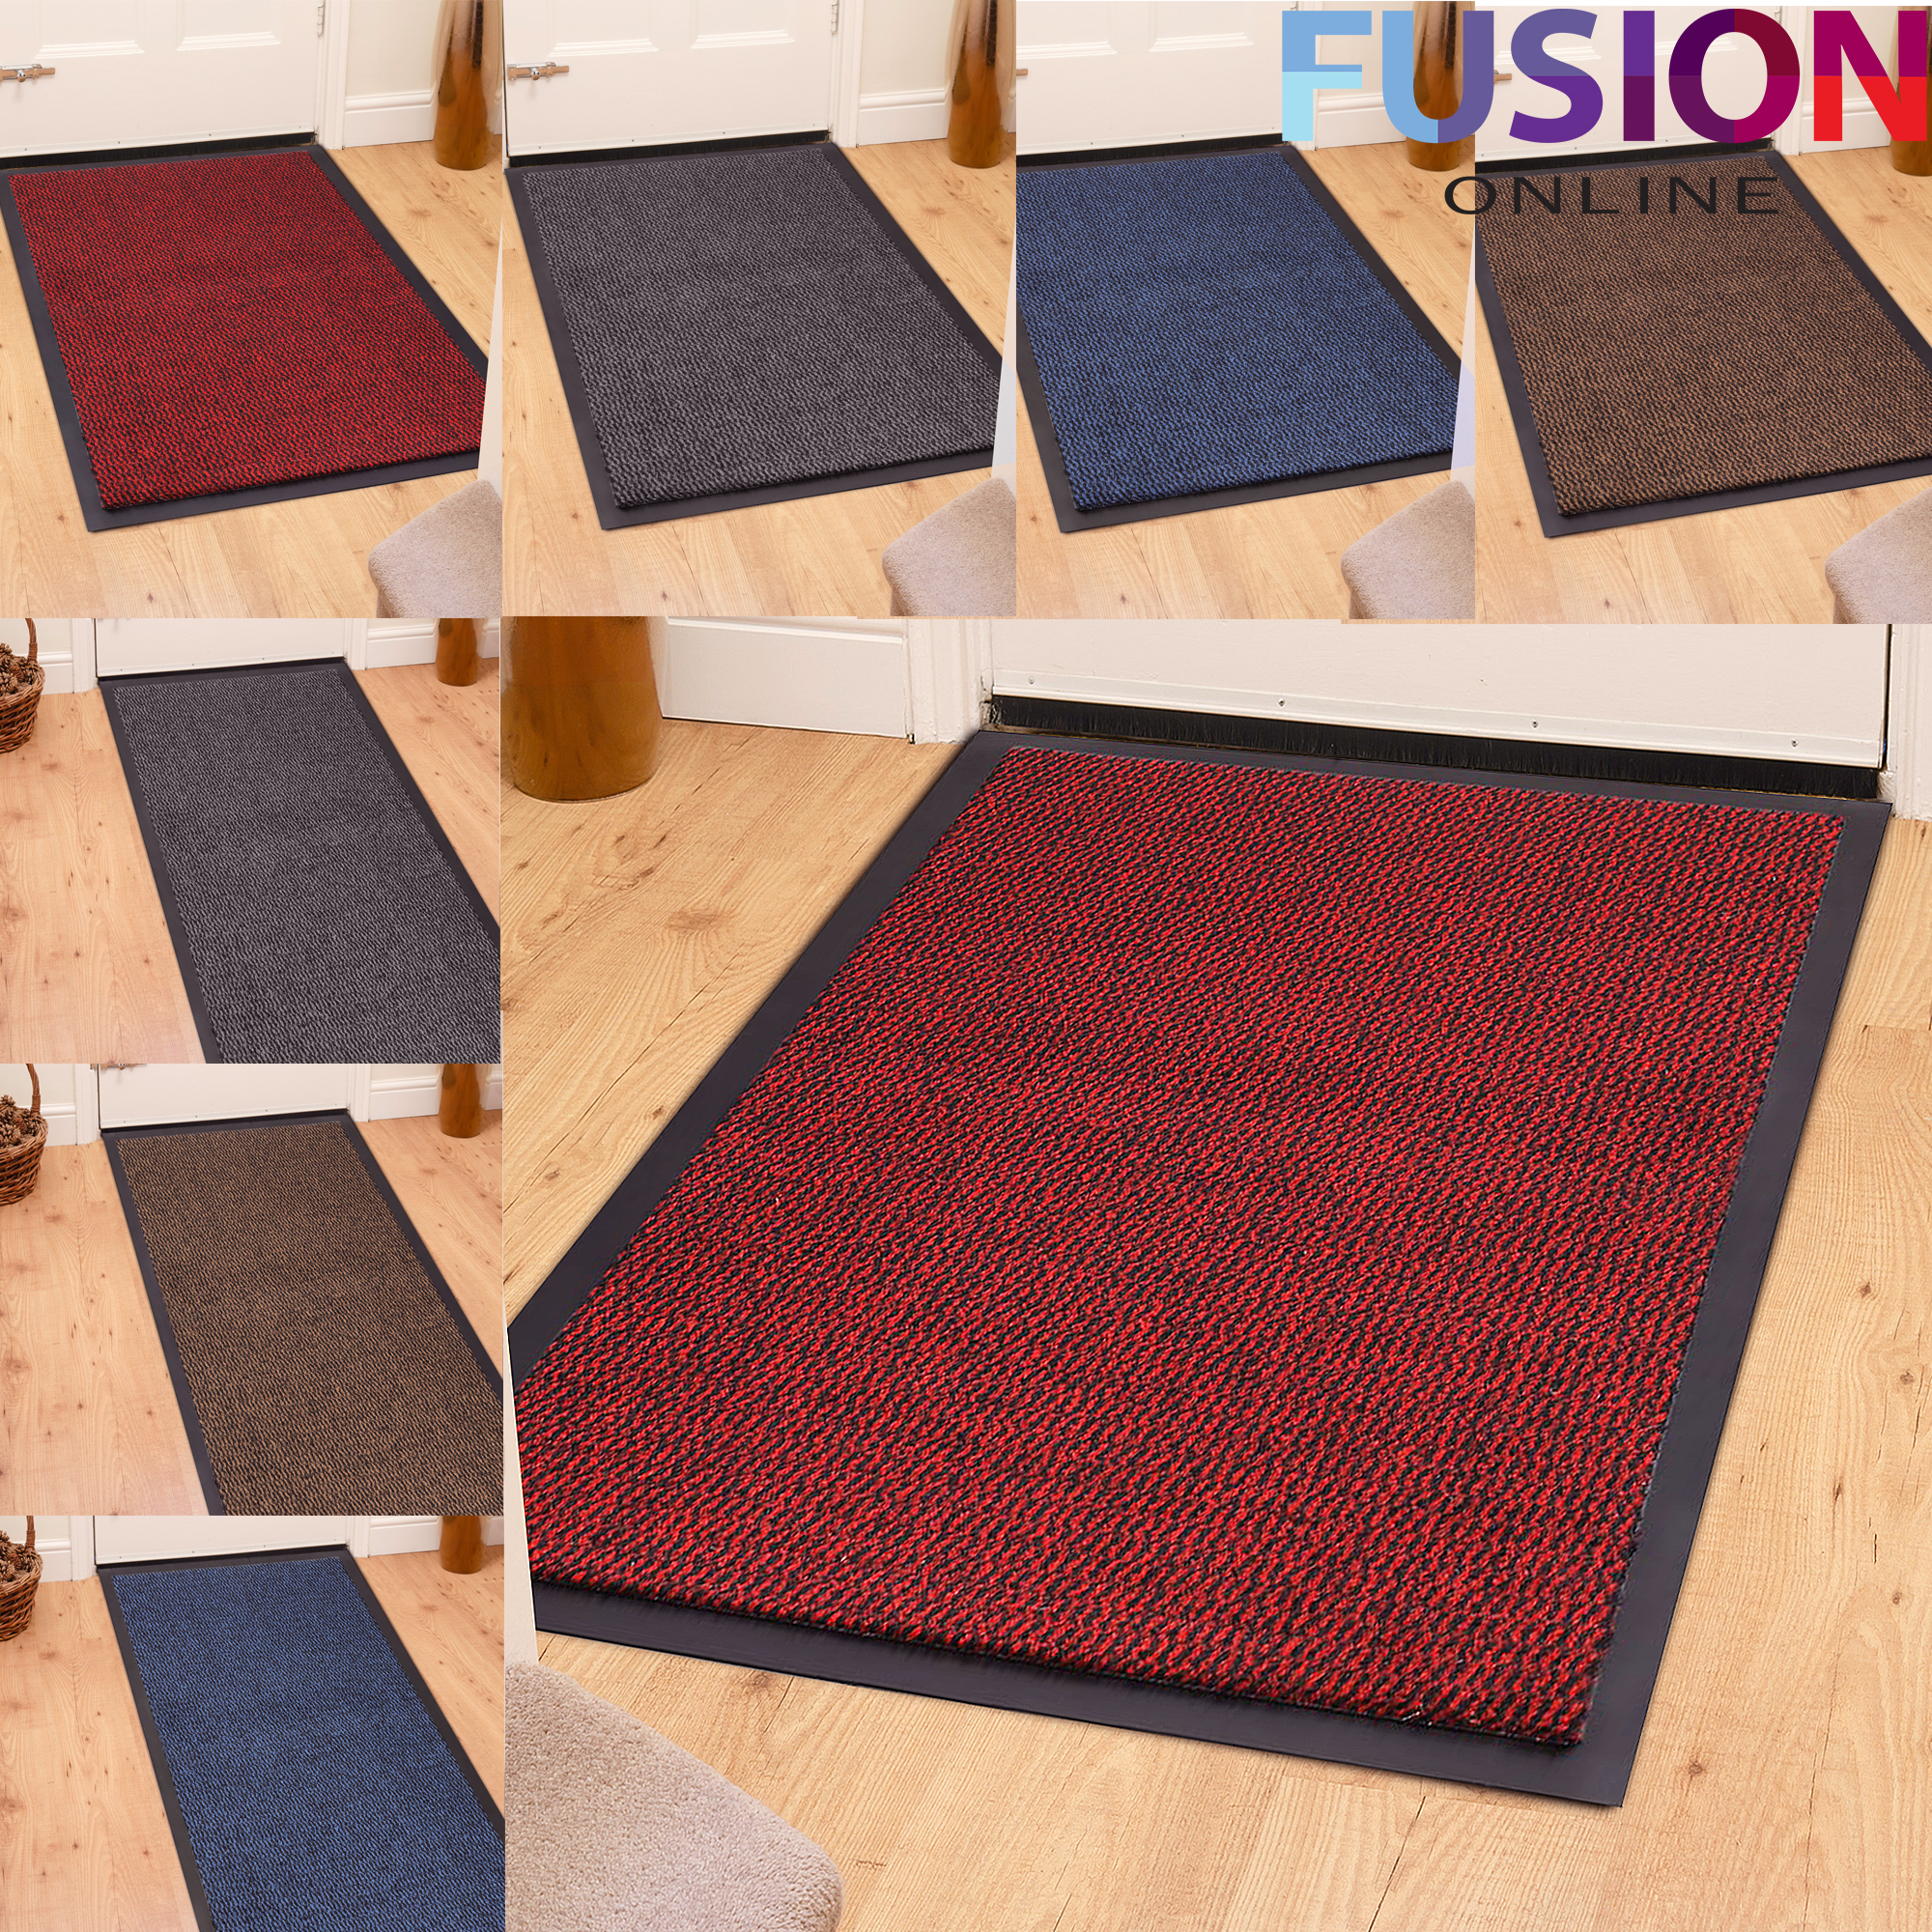 Rubber Kitchen Mats: Heavy Duty Non Slip Rubber Barrier Mat Large & Small Rugs